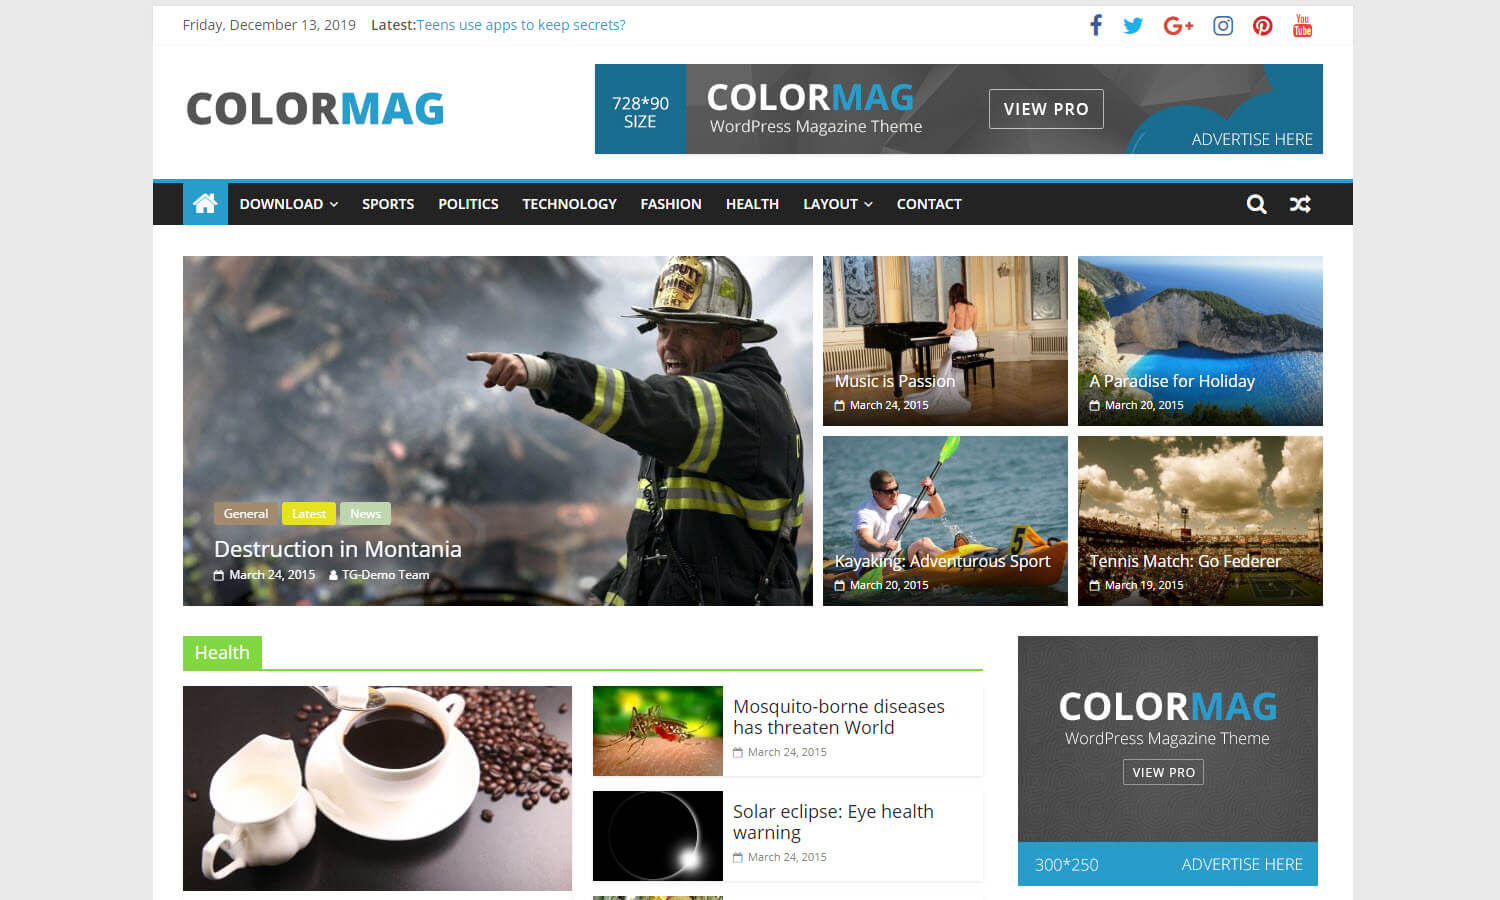 ColorMag screenshot